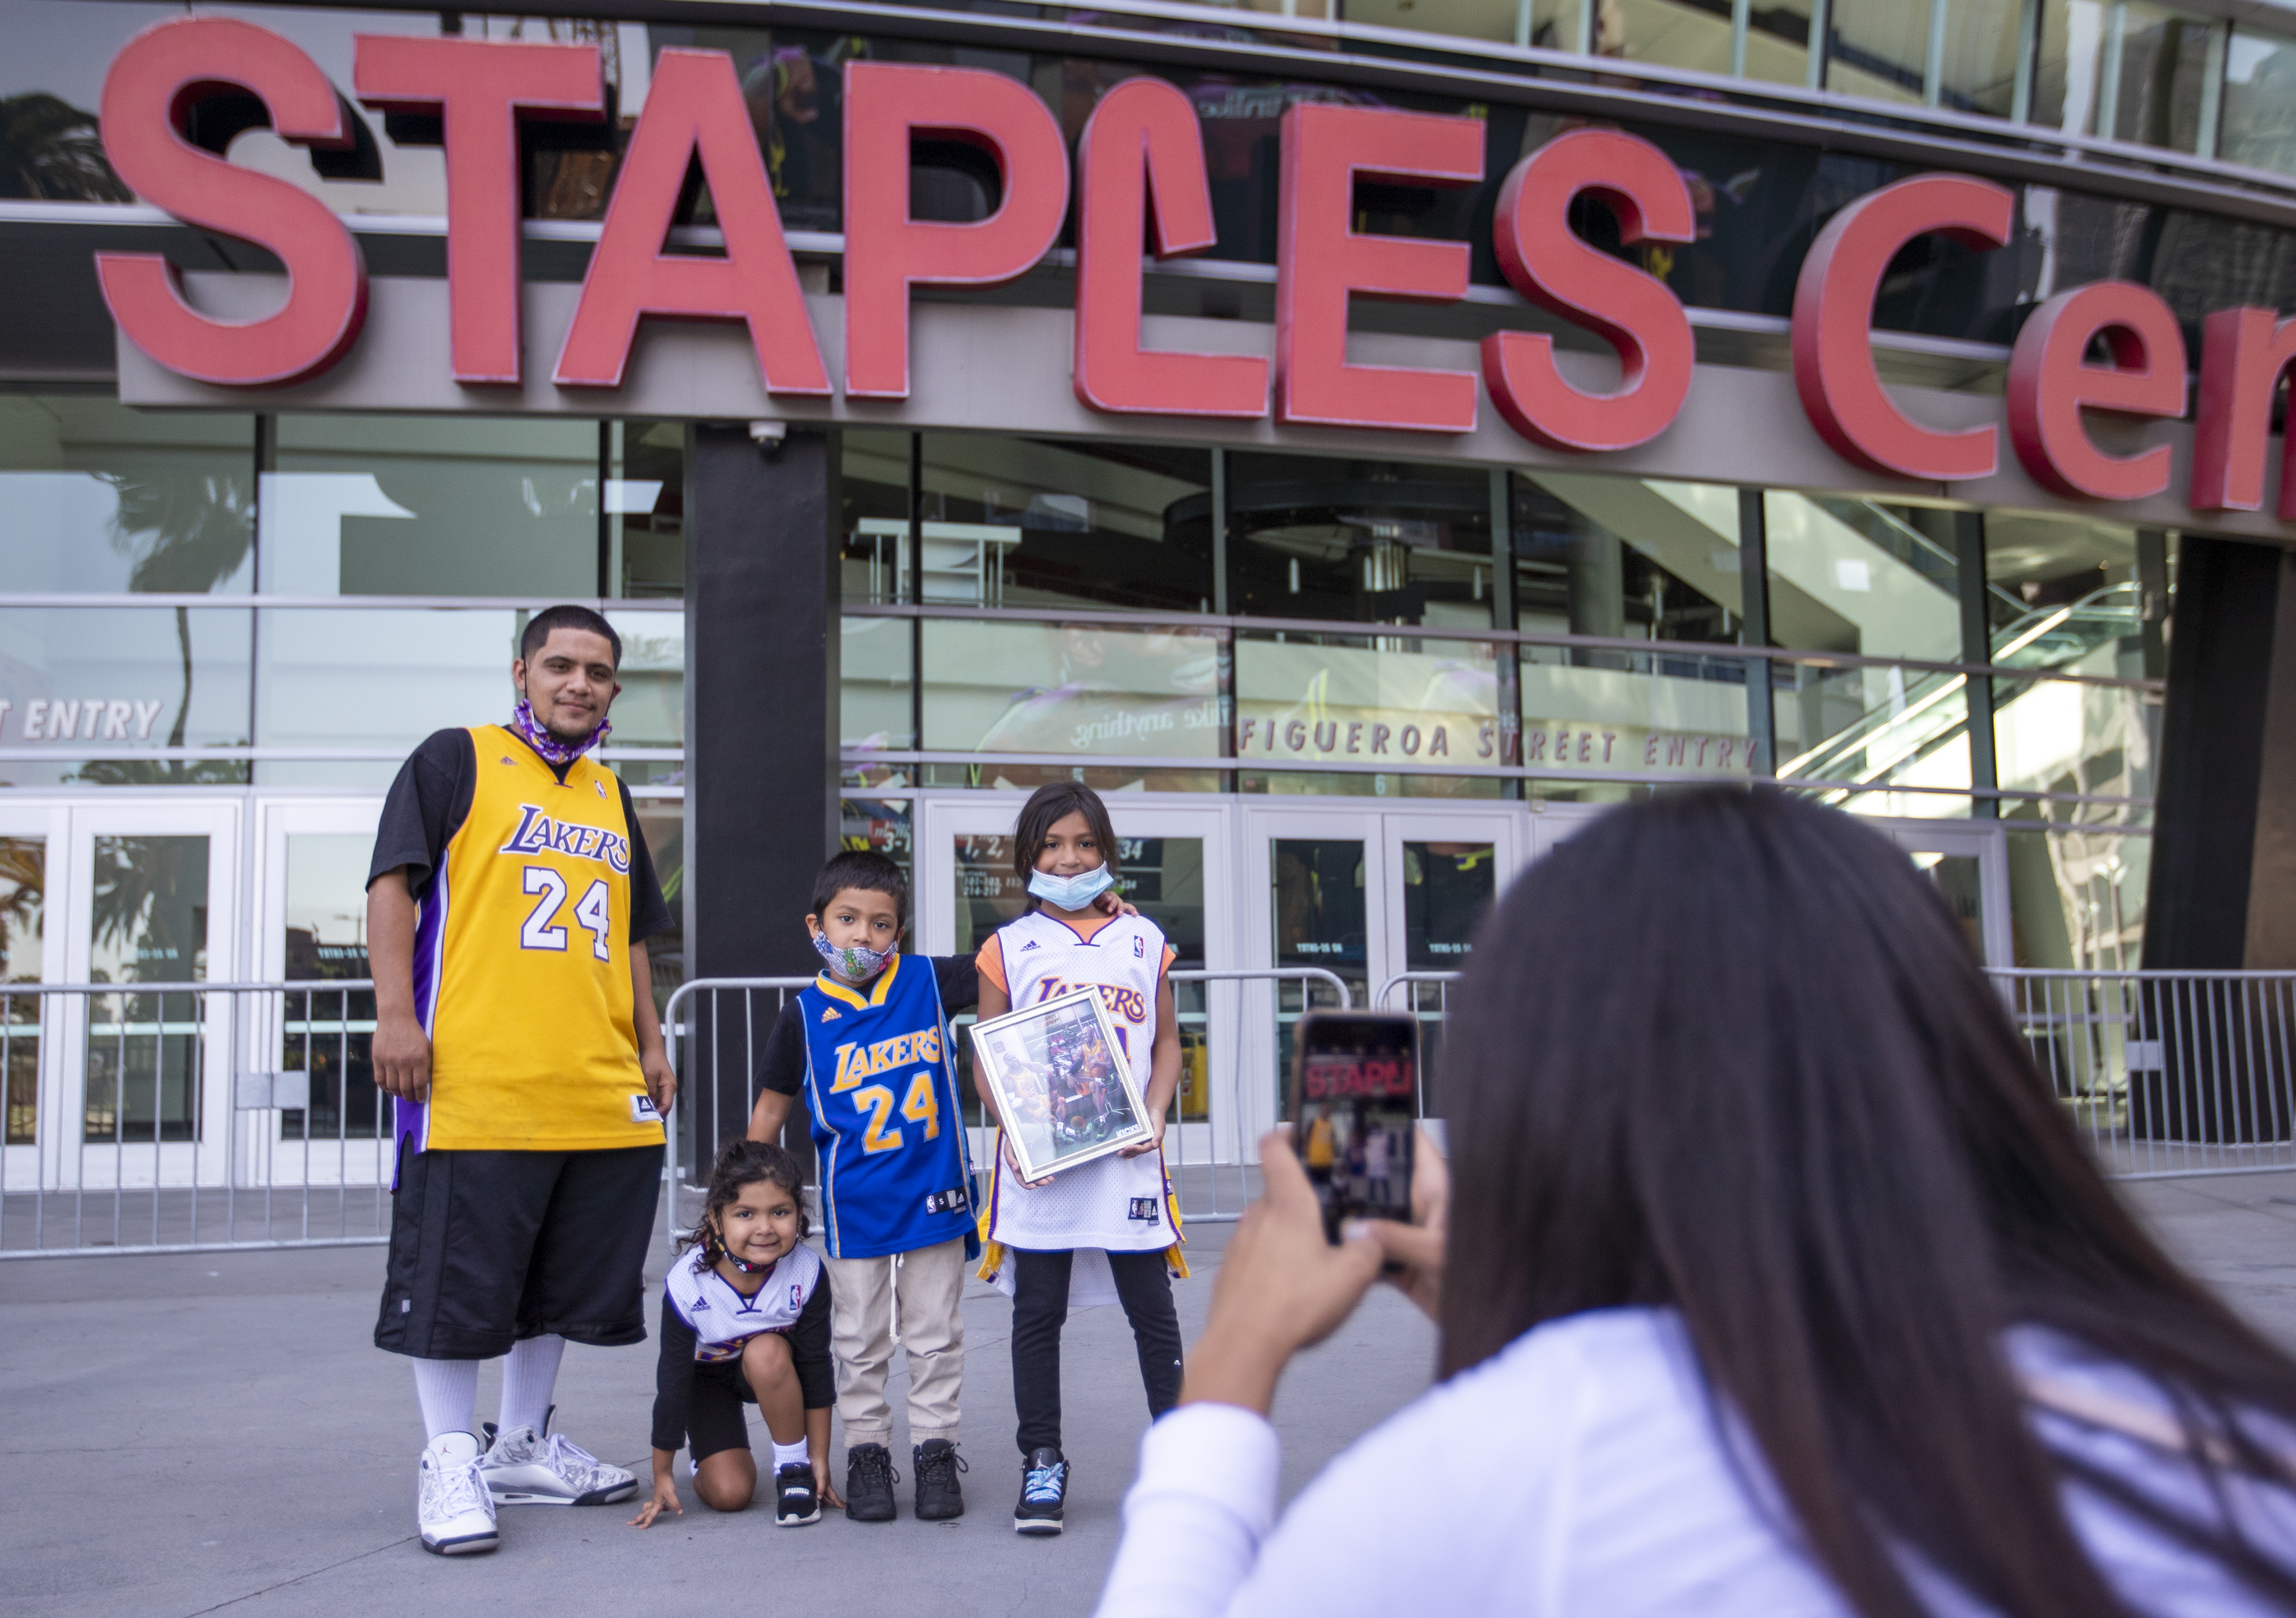 Lakers fans take photos in front of the Staples Center after the Lakers championship win